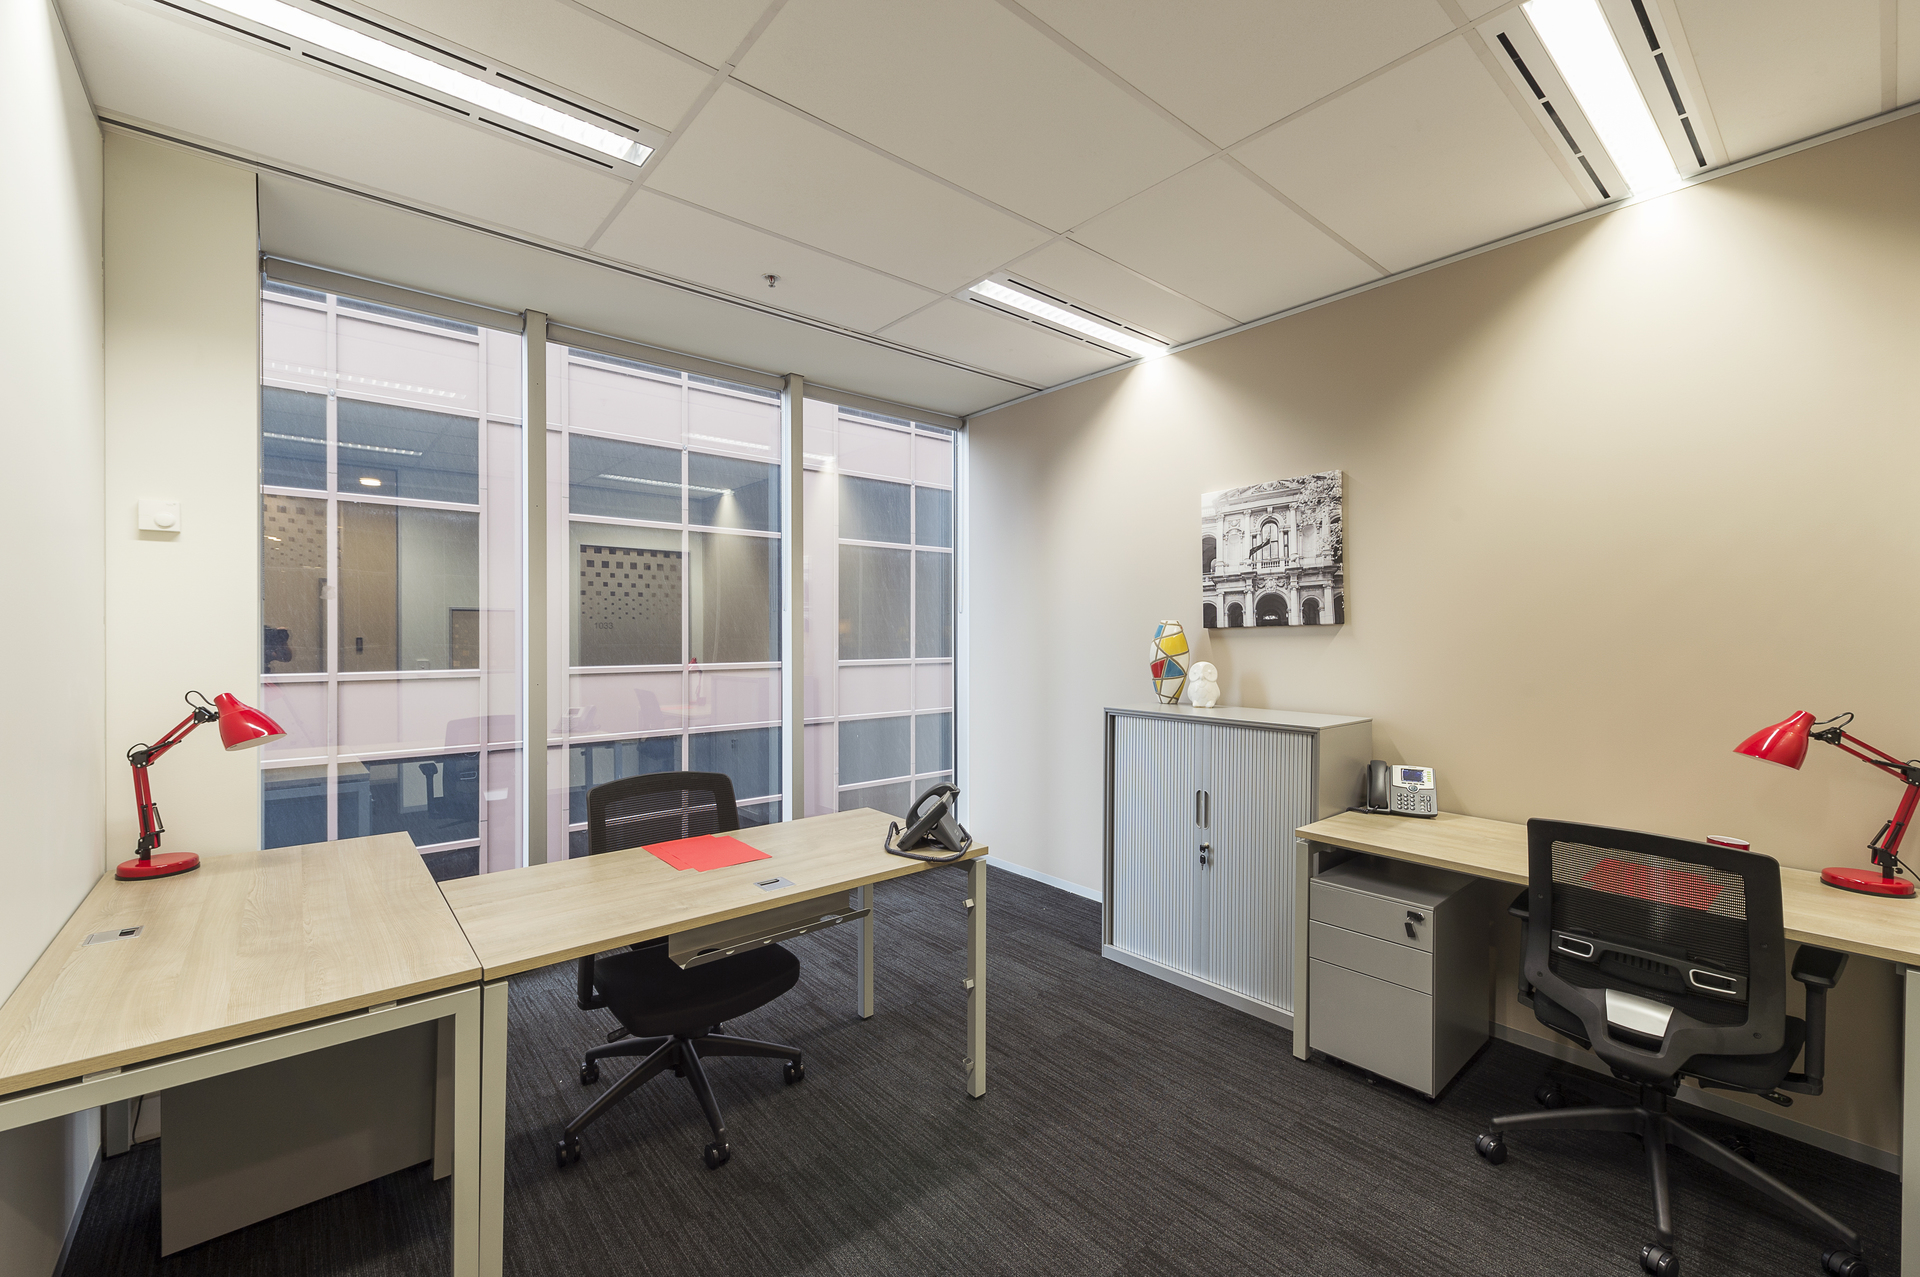 Searching for high quality and modern office space in the heart of the CBD? Call us today to book a tour!